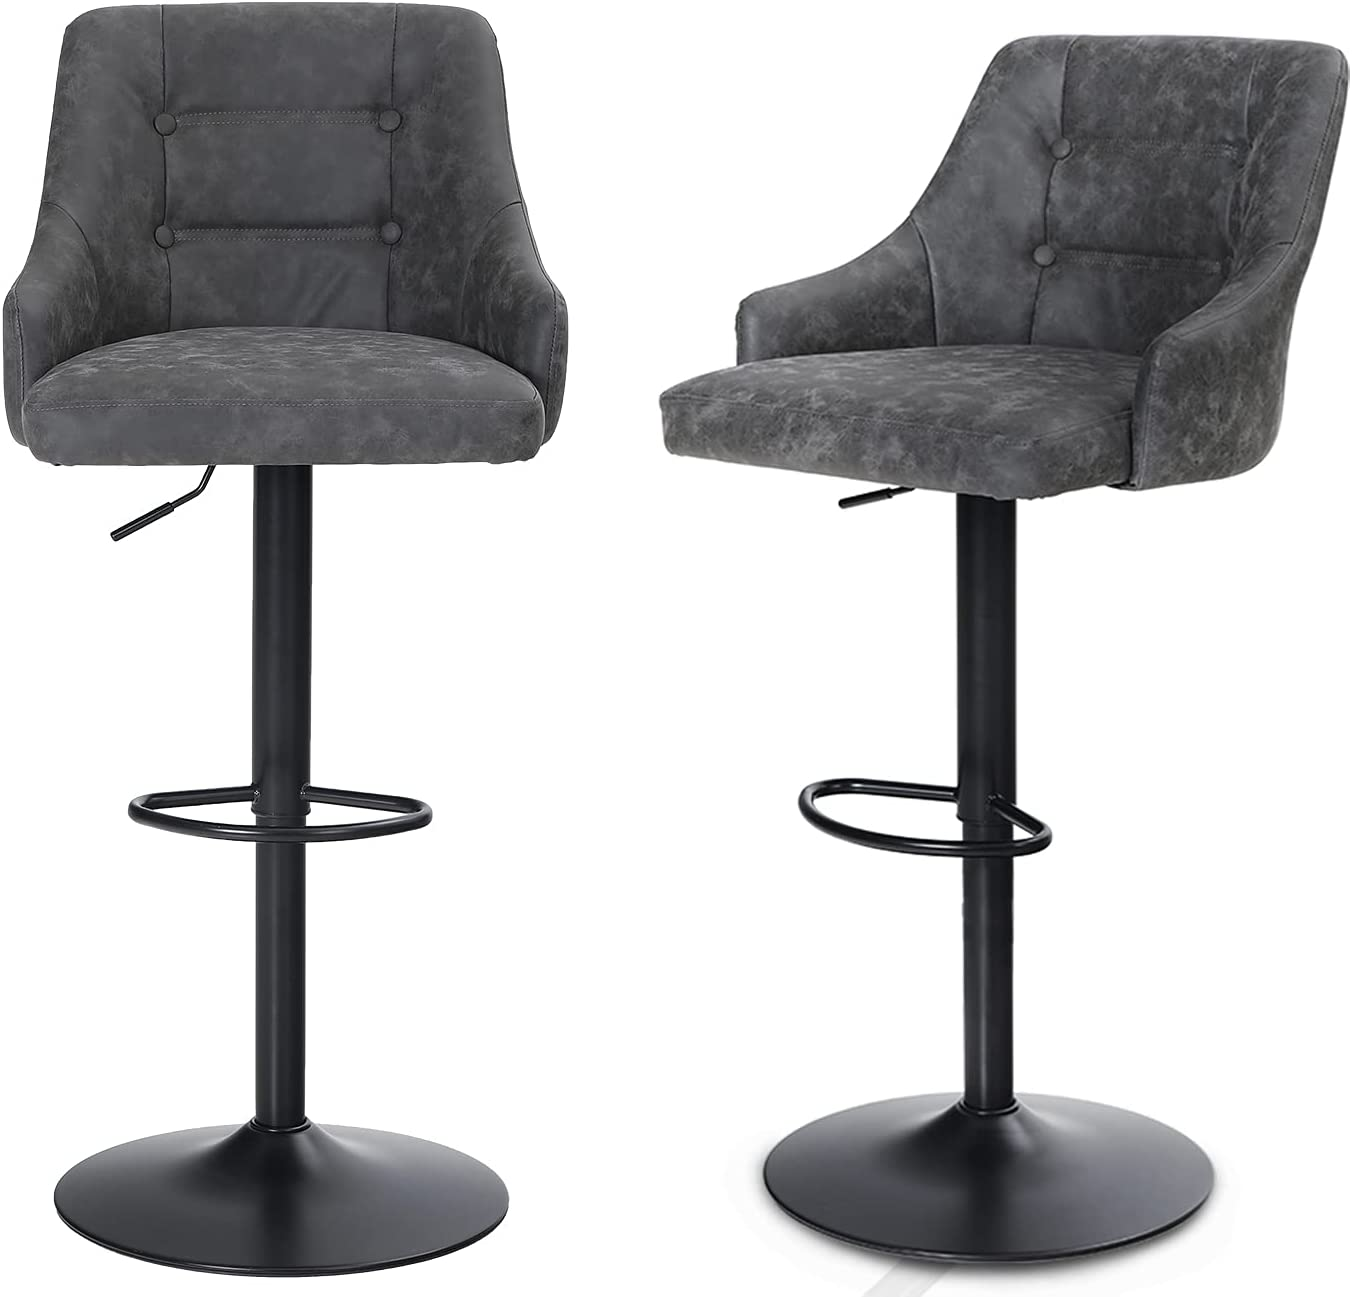 MAISON ARTS Swivel Adjustable Bar Stools with Back Set of 9 for Kitchen  Counter Padded Counter Height Faux Leather Bar Chairs with Heavy Duty Base  for ...